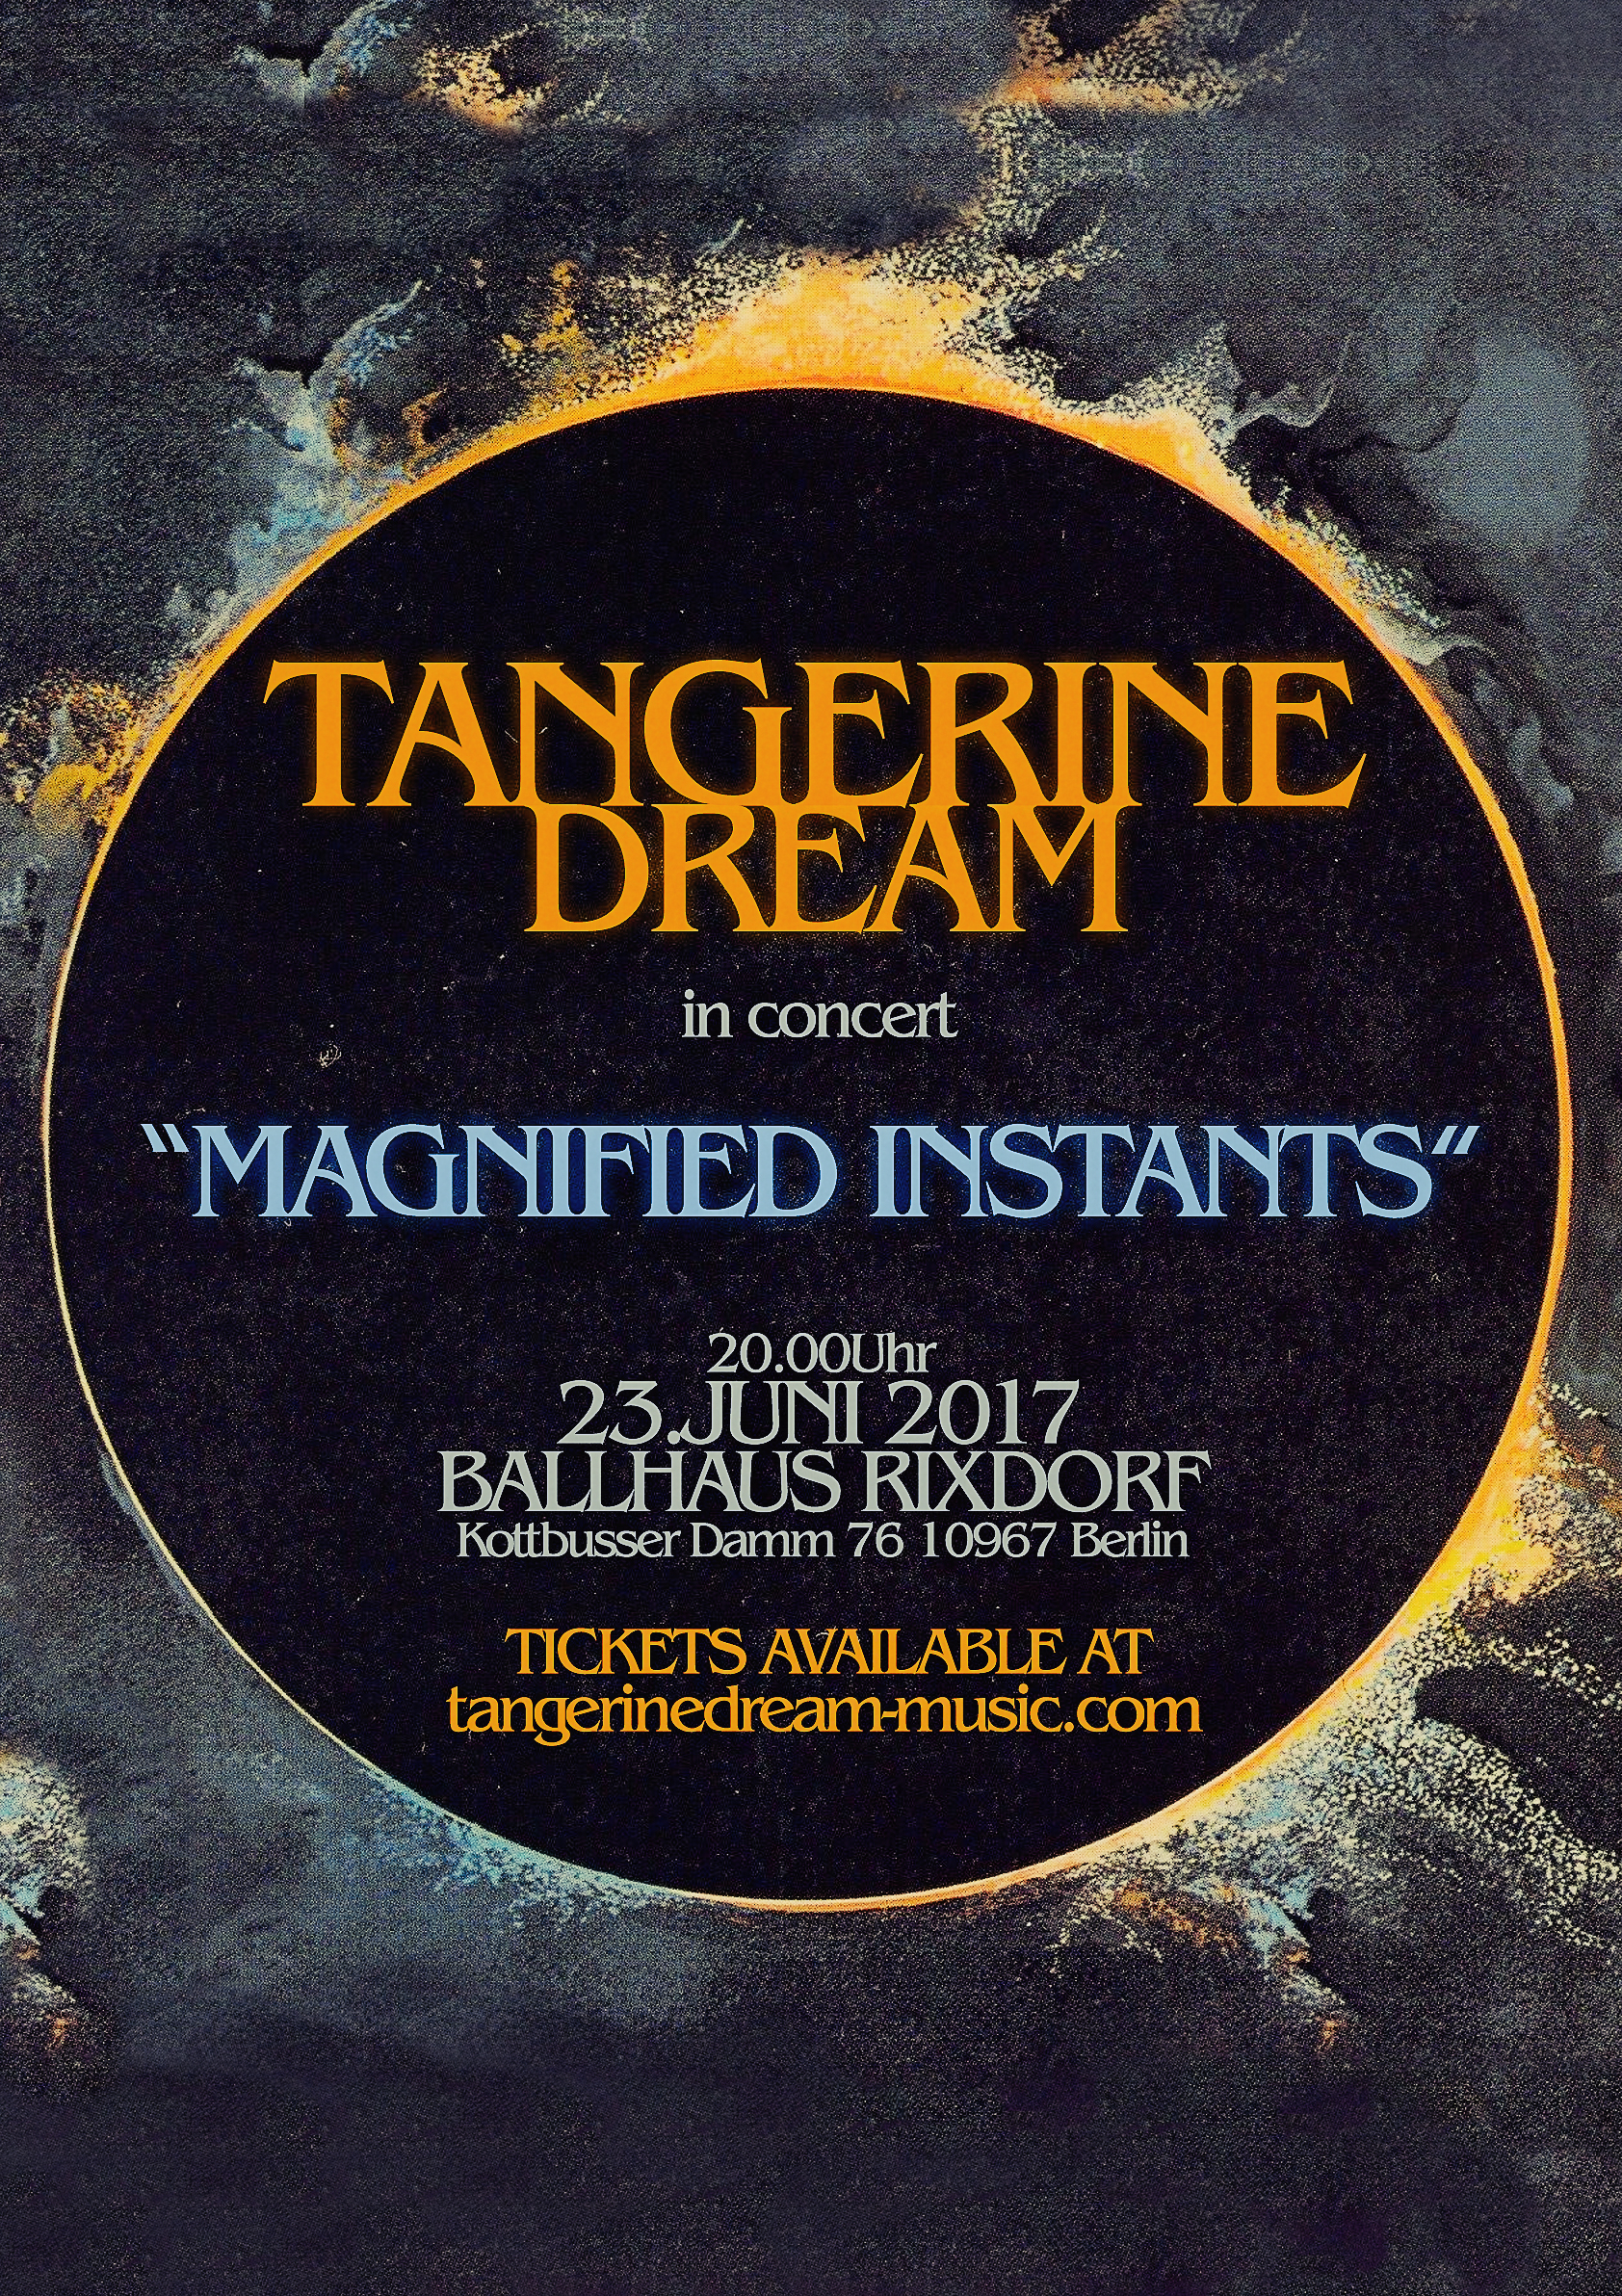 Tangerine Dream weekend in Berlin start 23/June/2017